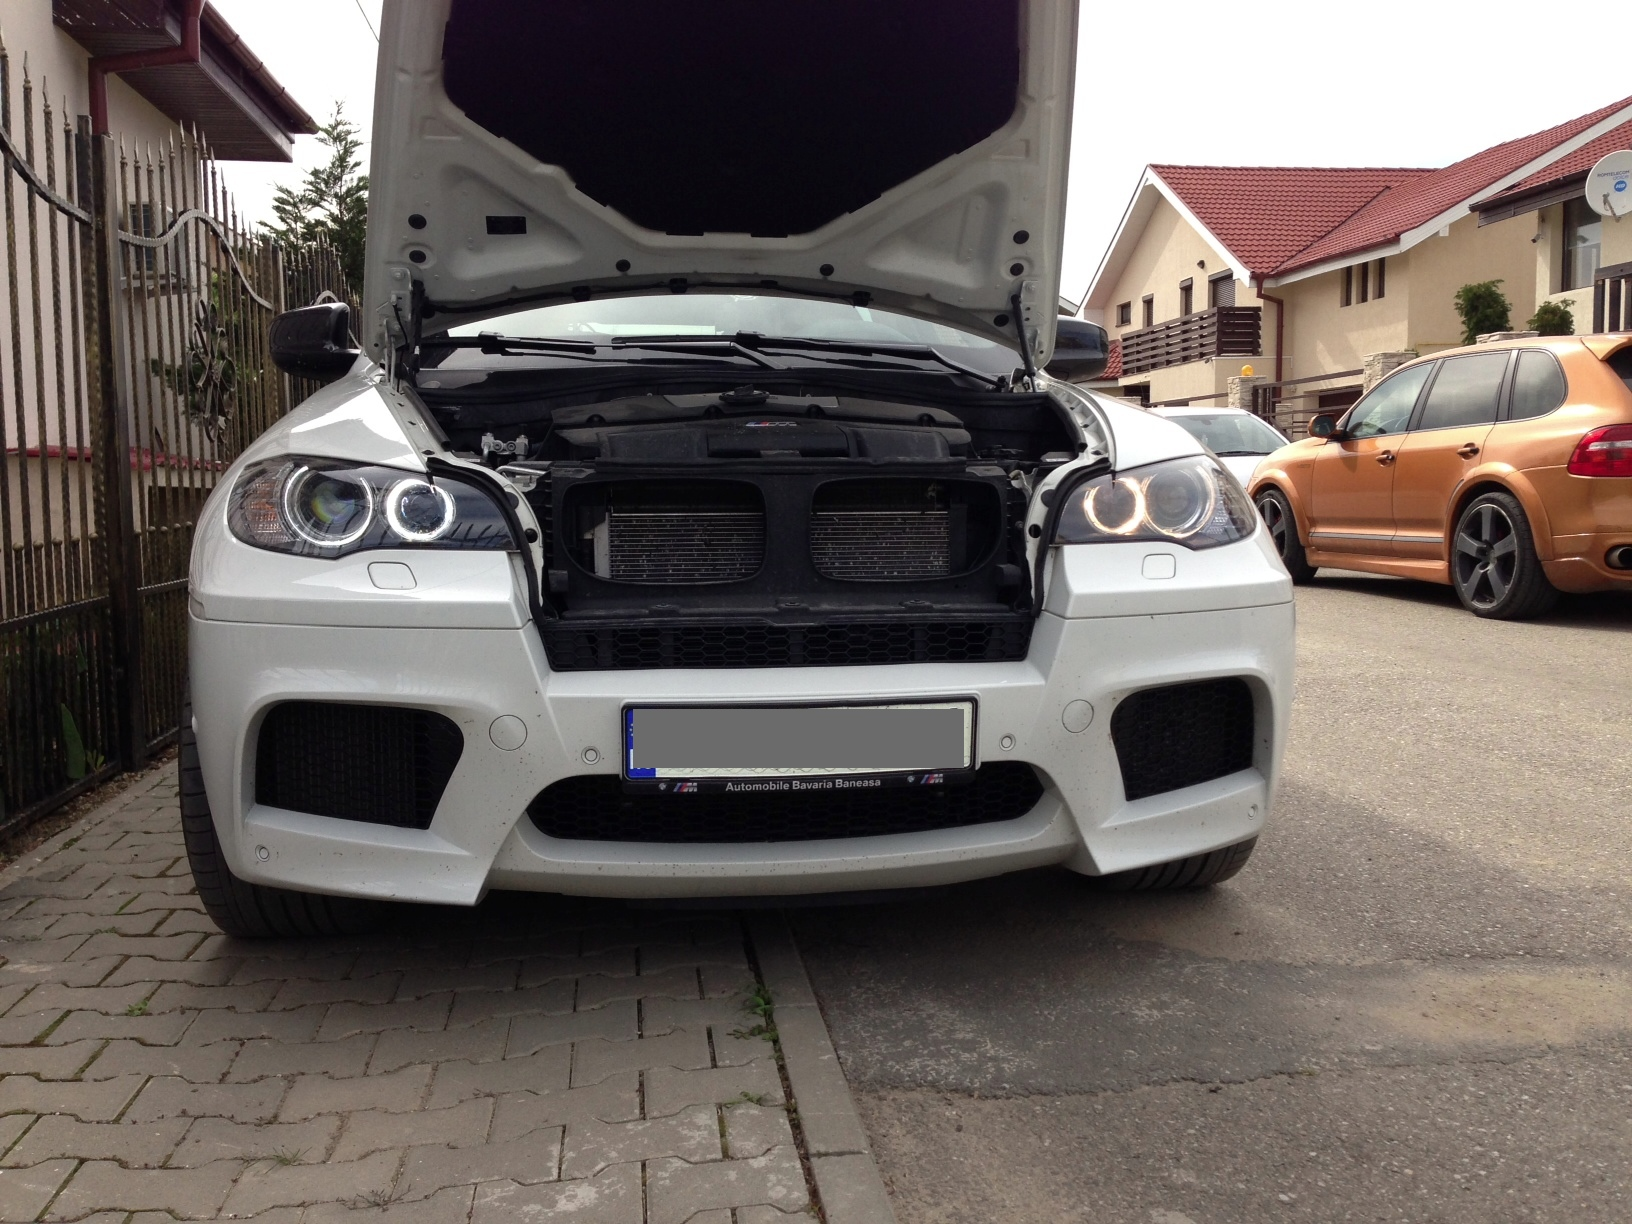 Adjustable Angel Eyes Kit Install Diy For Bmw X6 M